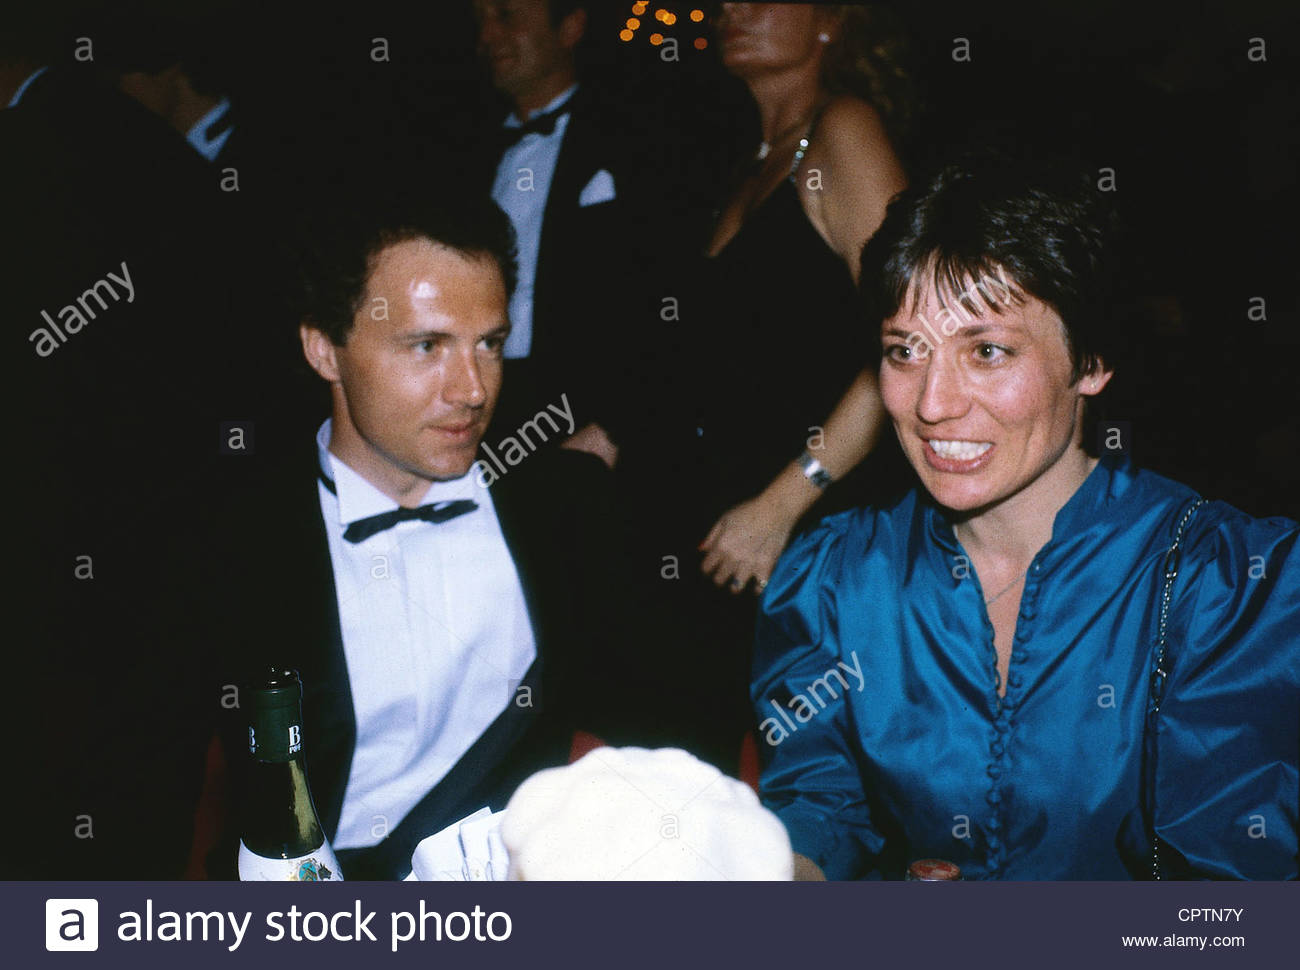 Beckenbauer, Franz * 11.9.1945, German football player, half length, with Rosi Mittermeier, 1980s, soccer, - Stock Image